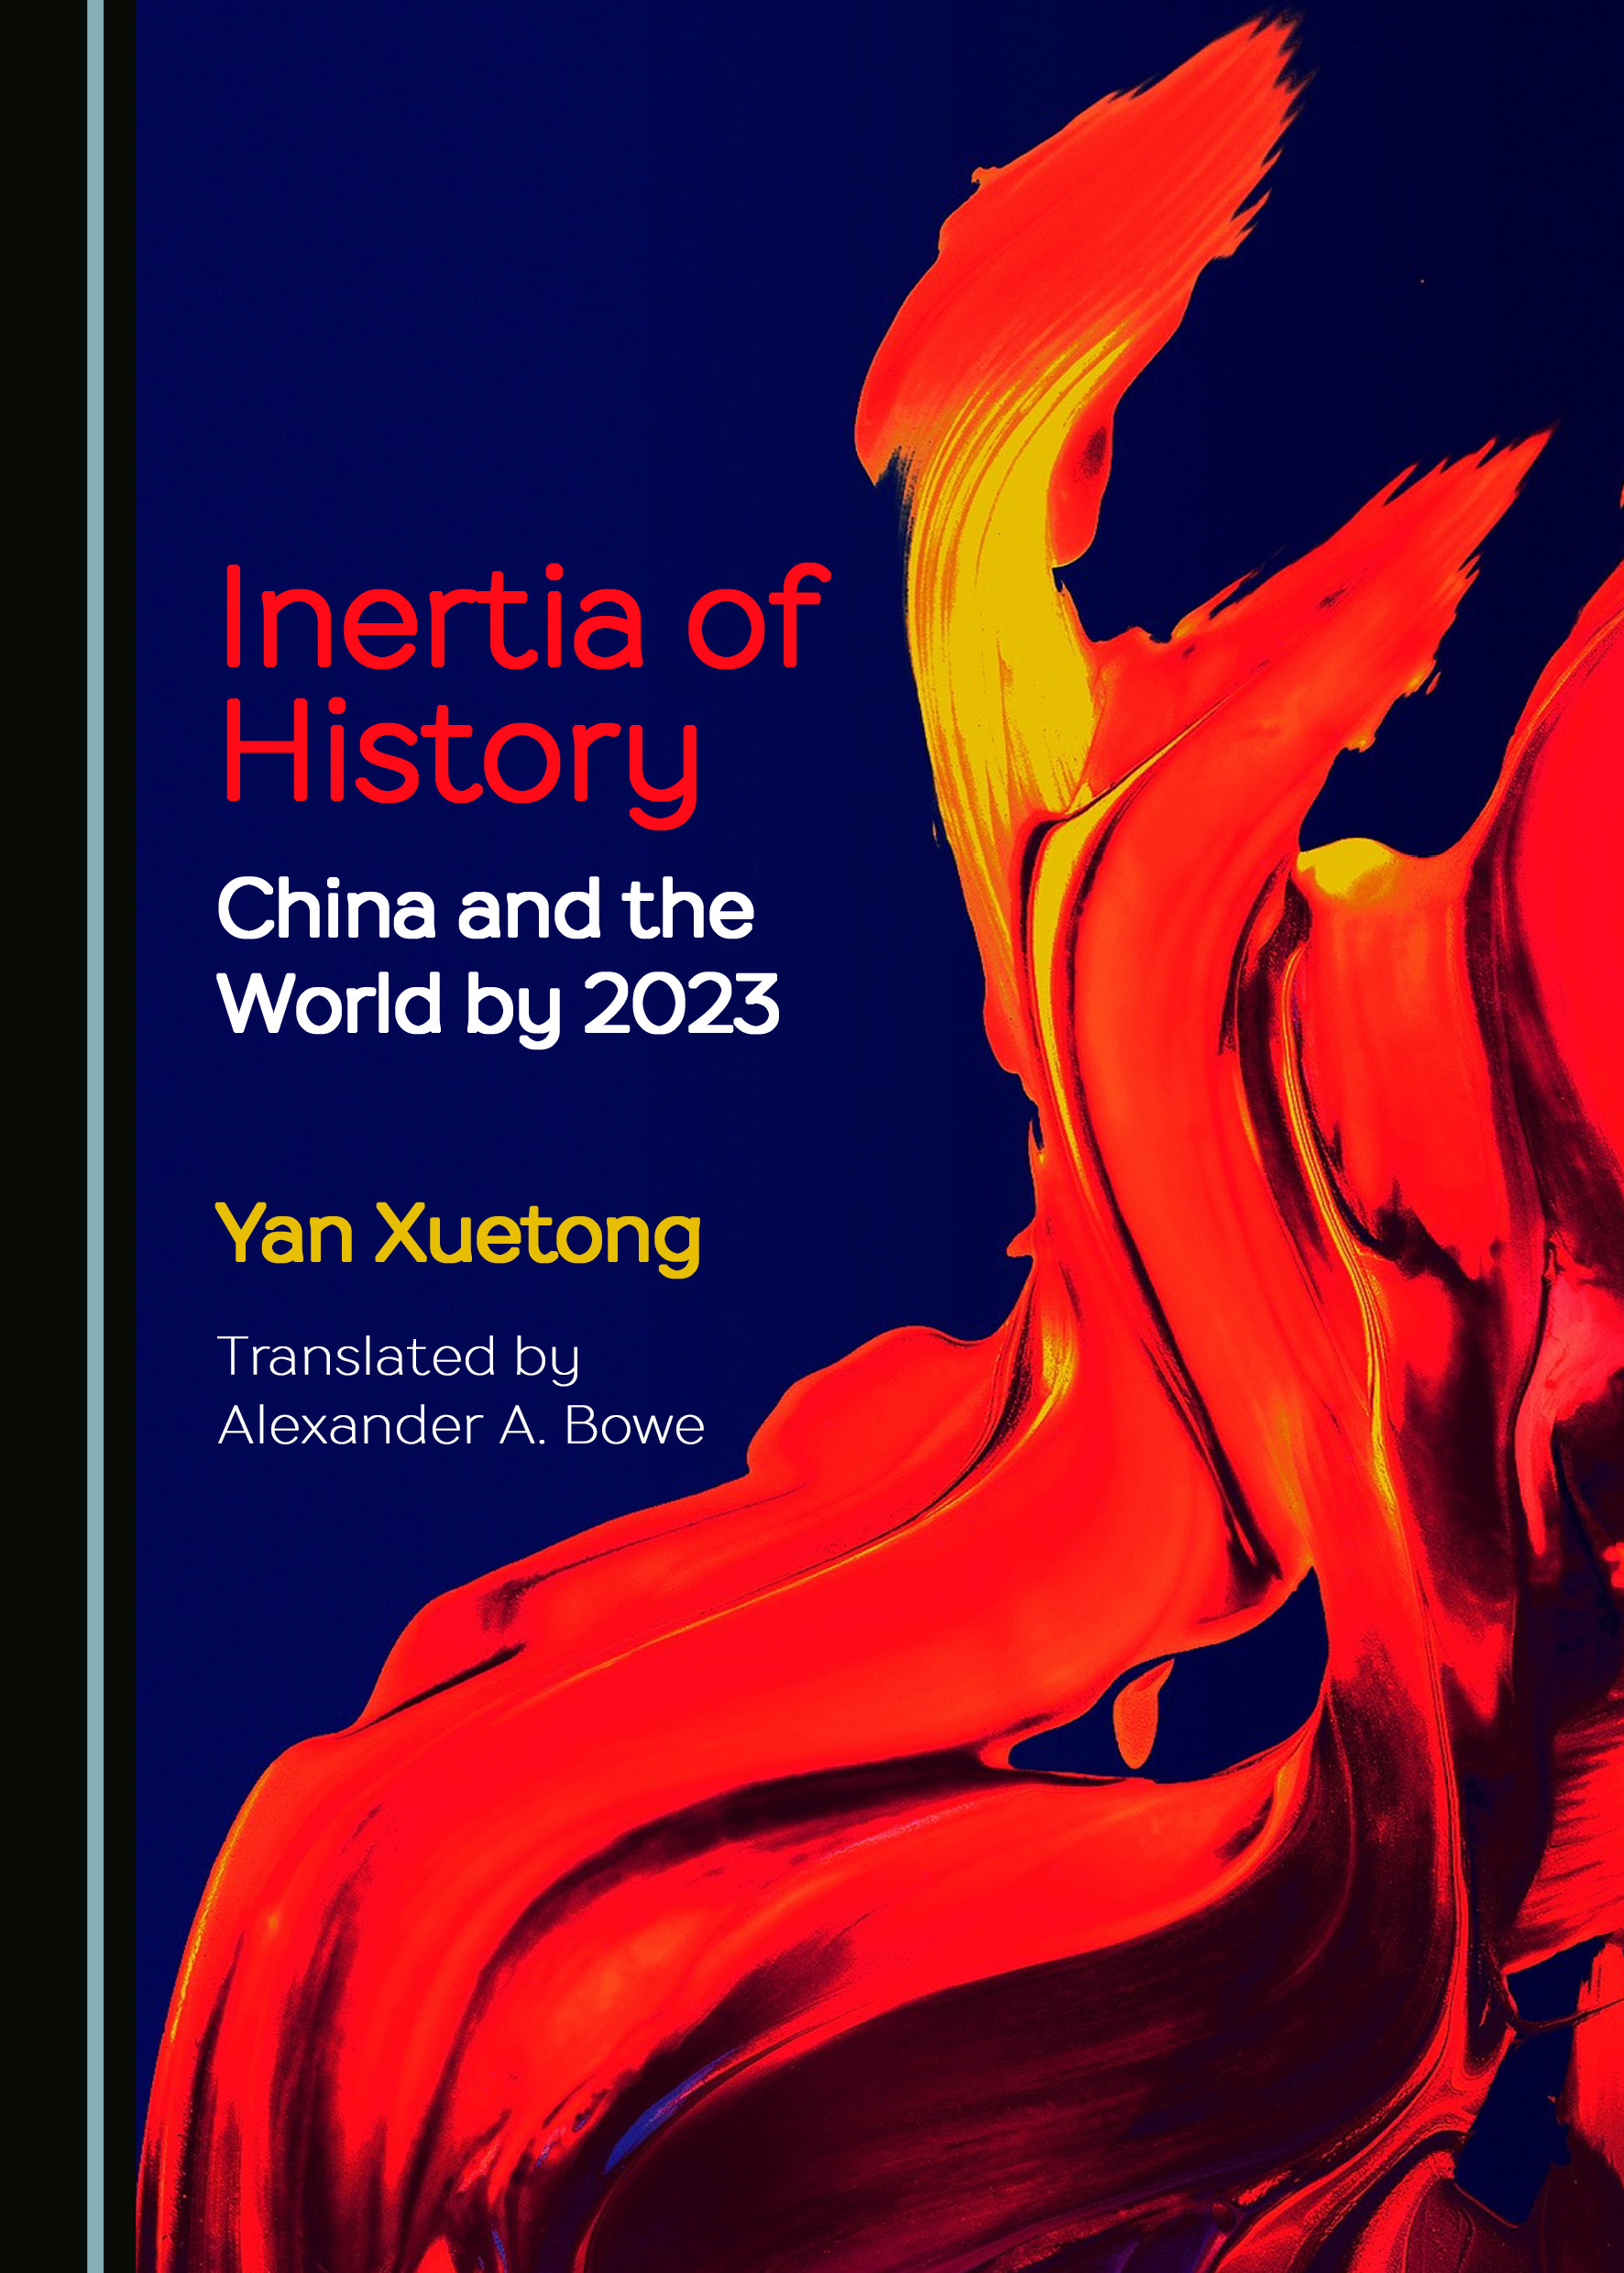 Inertia of History: China and the World by 2023